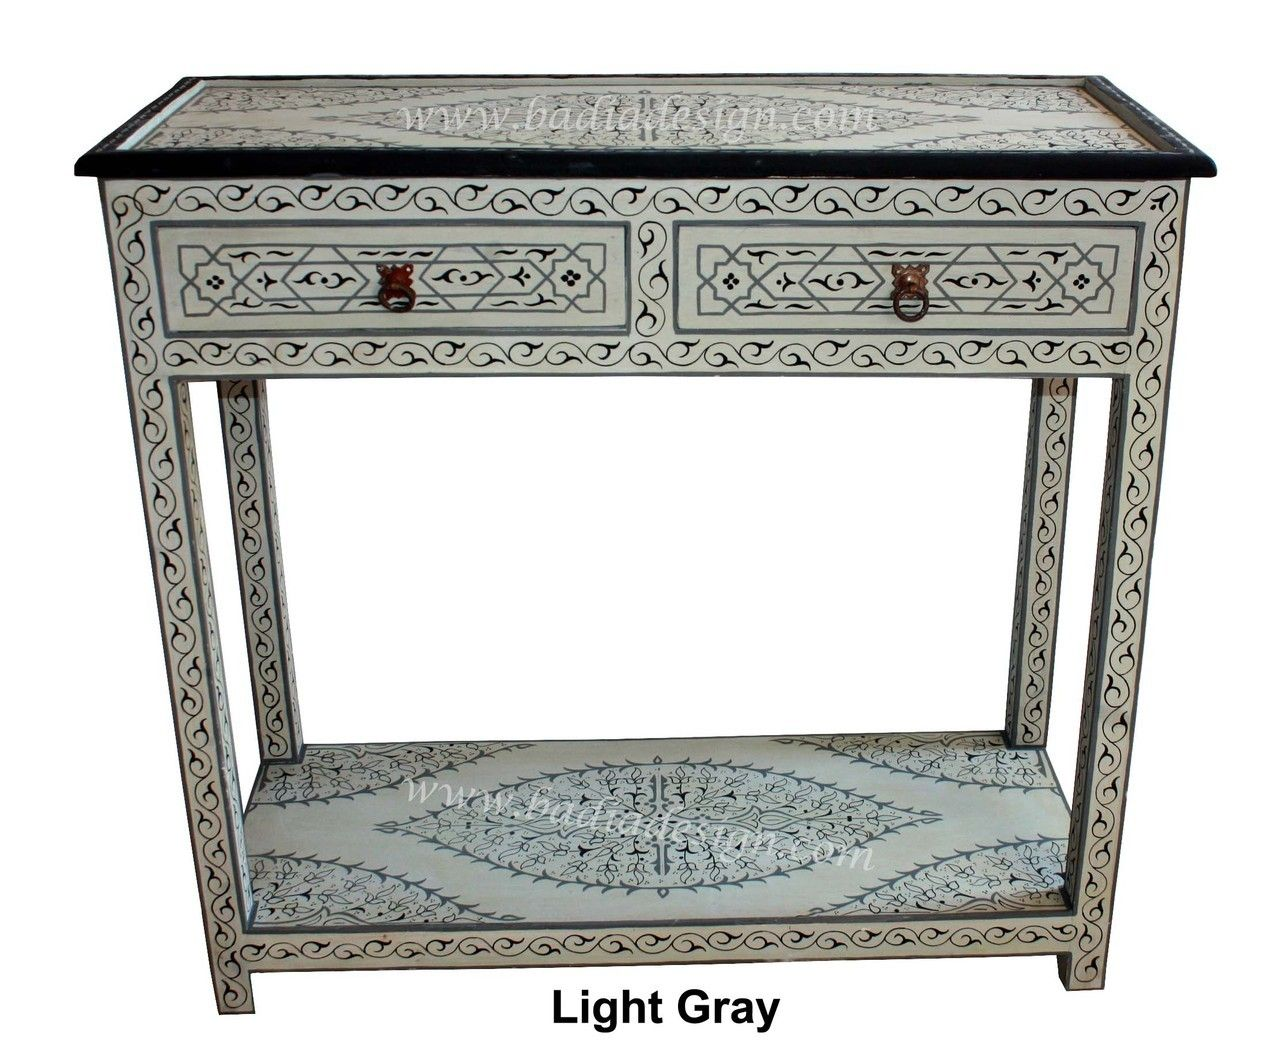 Badia Design Inc Store   Hand Painted Buffet Table   HPB005, $595.00 (http: